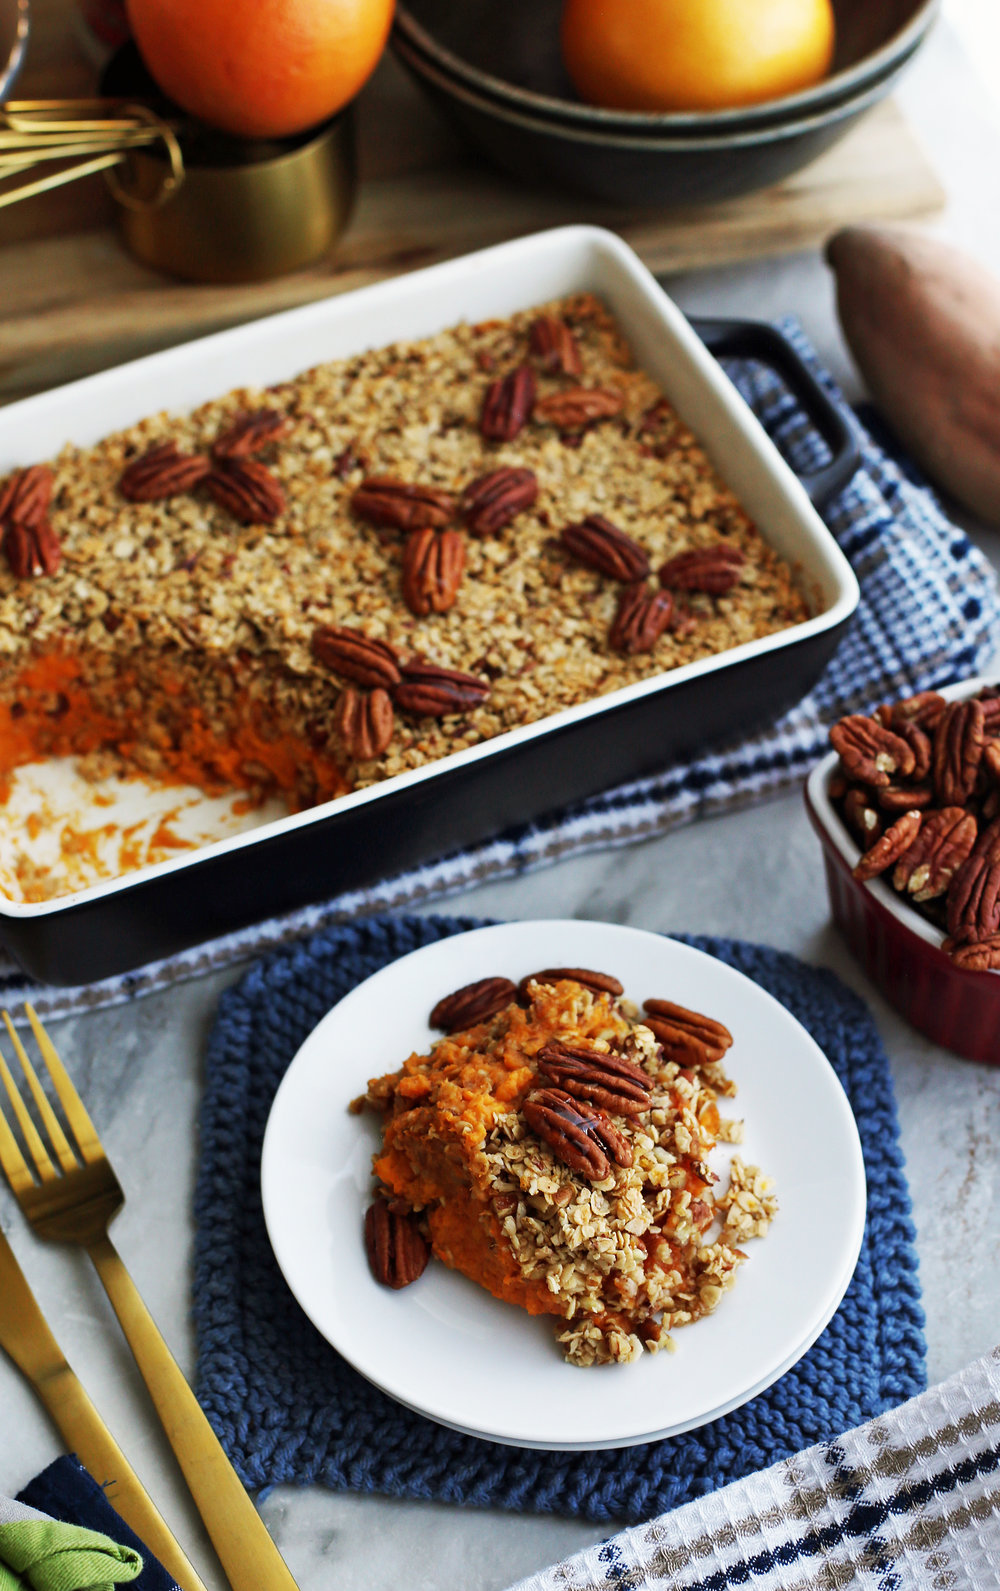 Sweet Potato Mash with Pecan Oat Topping on a white plate and in a black casserole dish.